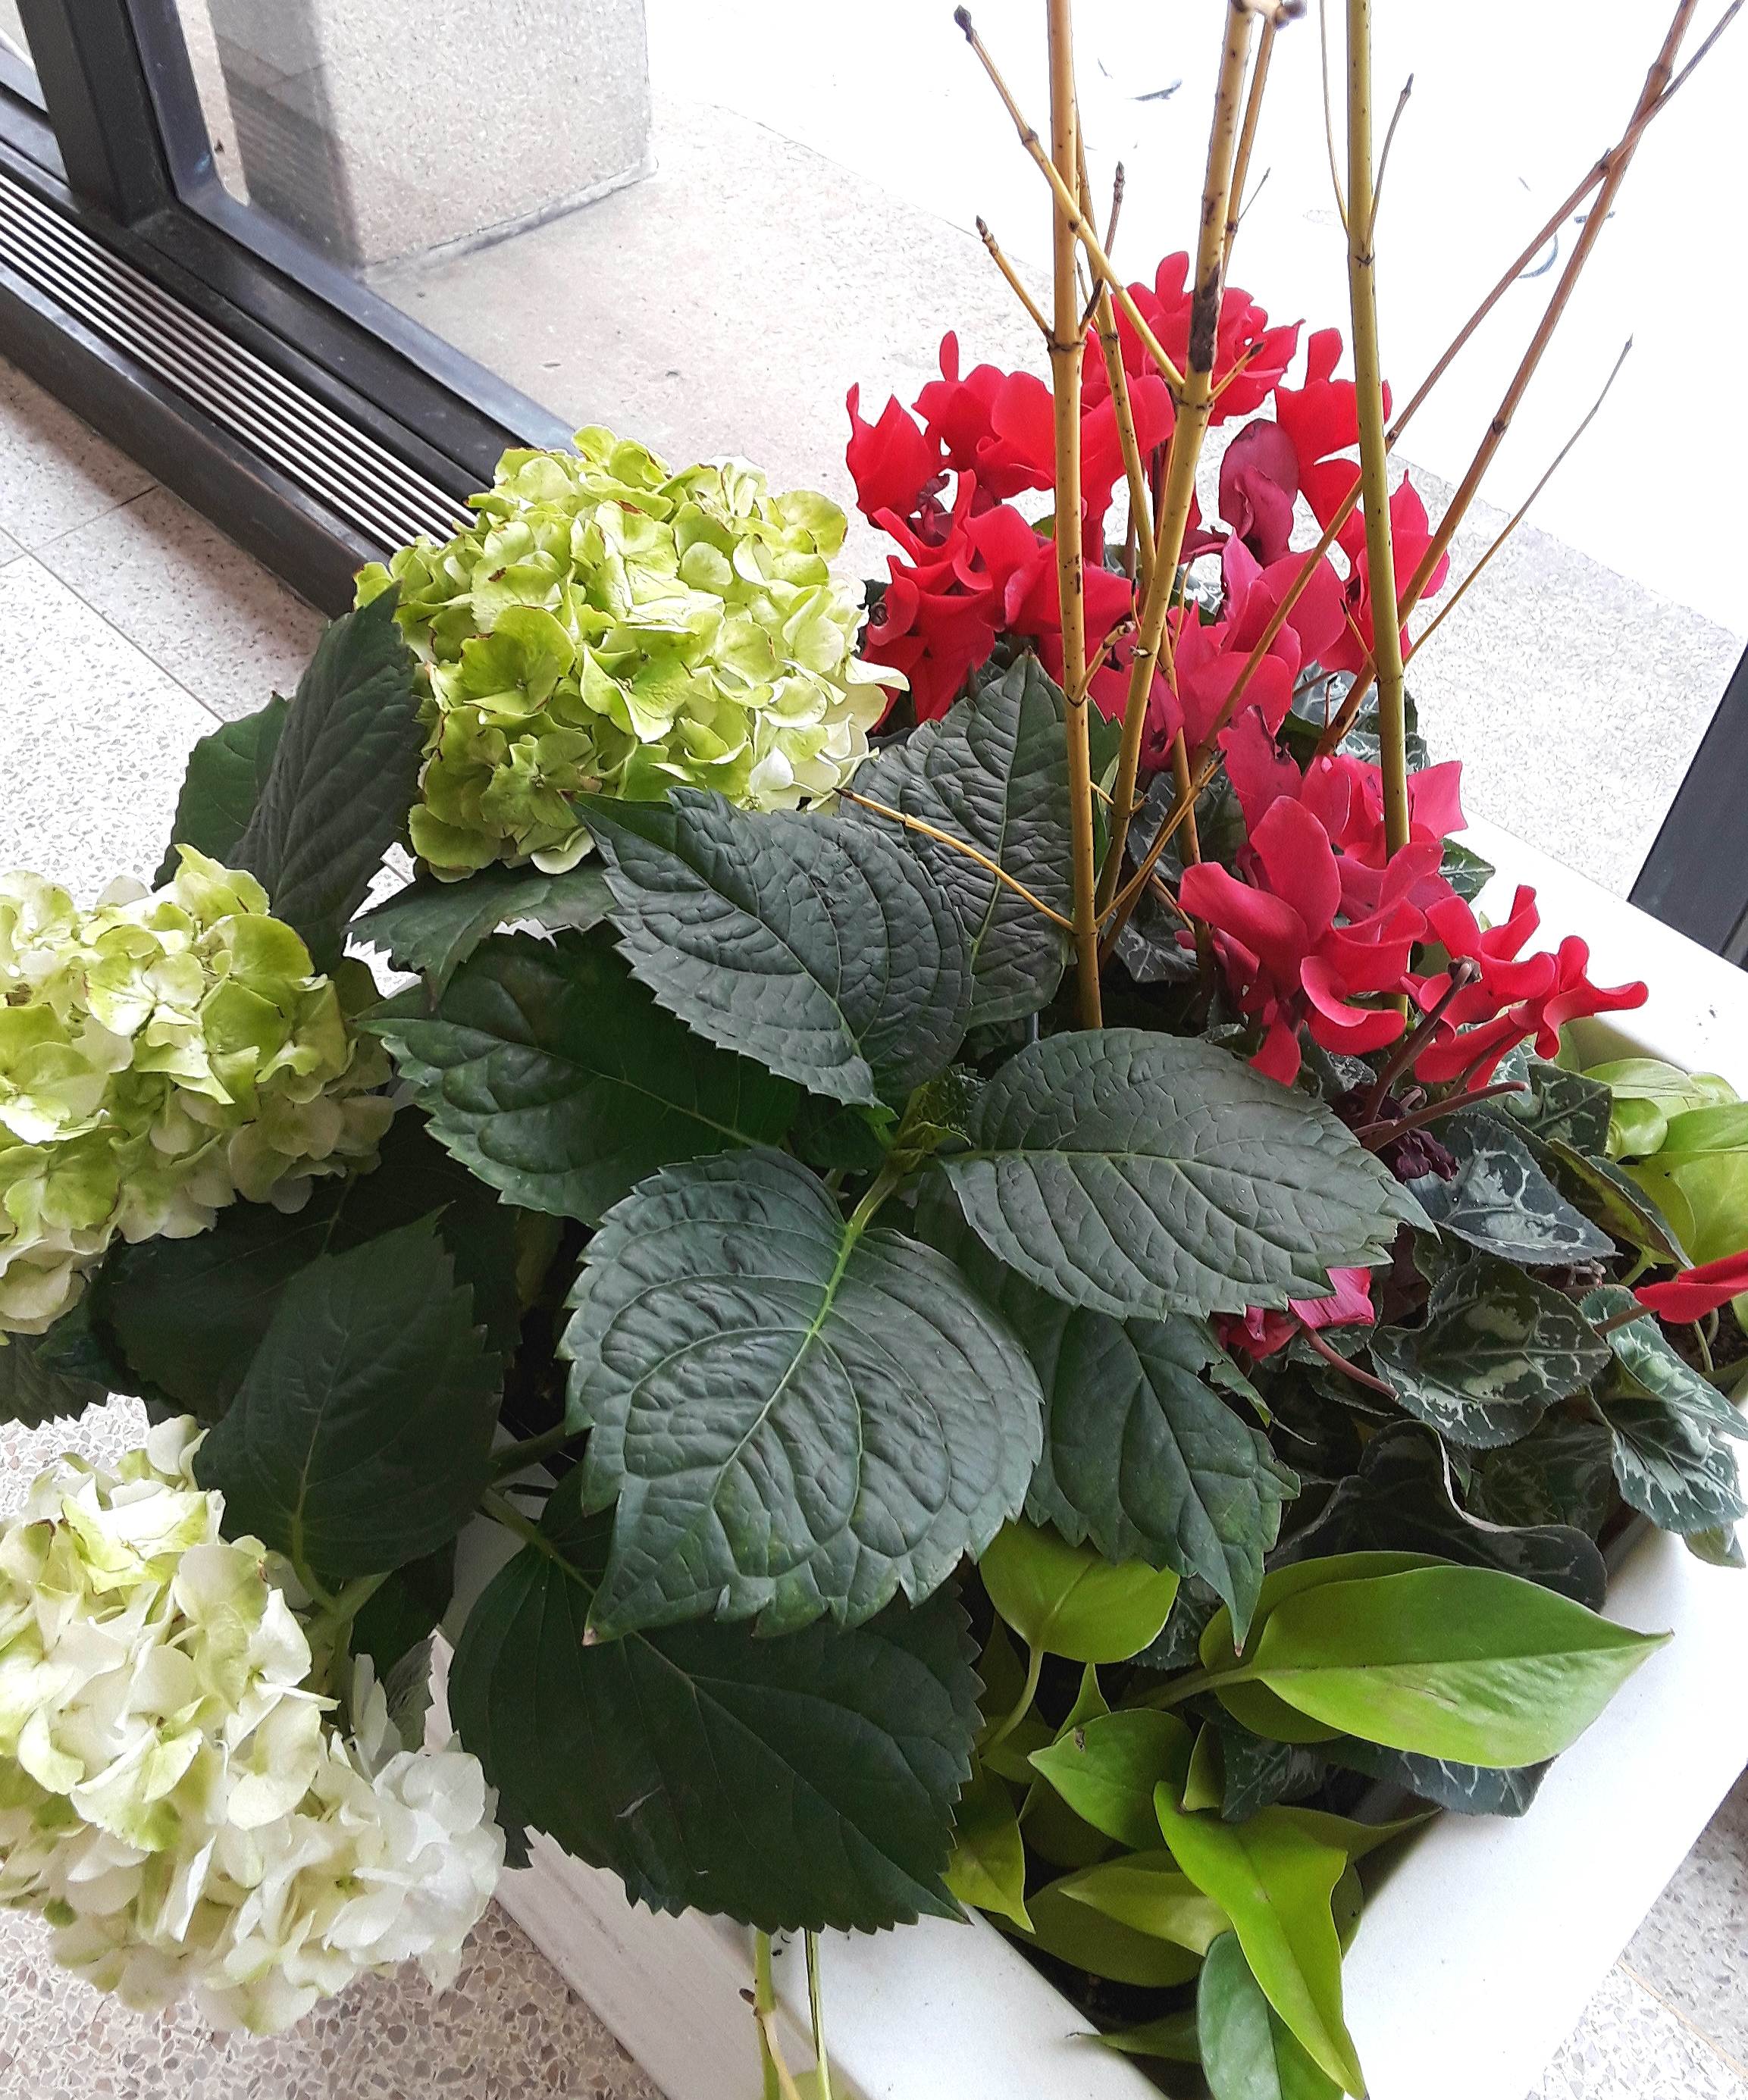 The Christmas planters include red, green and white colored flowers and foliage.